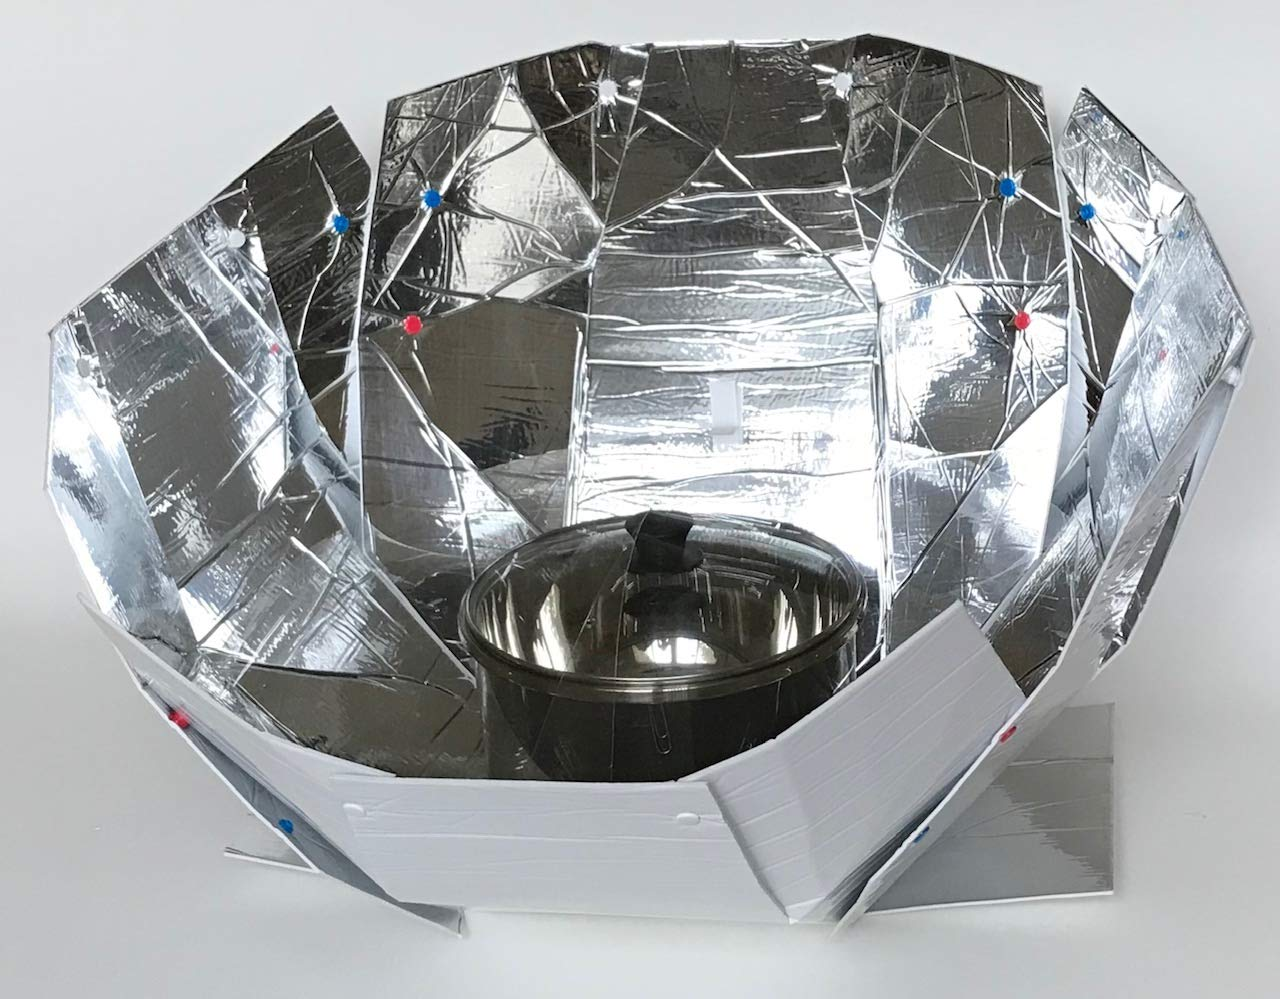 Haines 2.0 Solar Cooker and Dutch Oven Kit by Haines